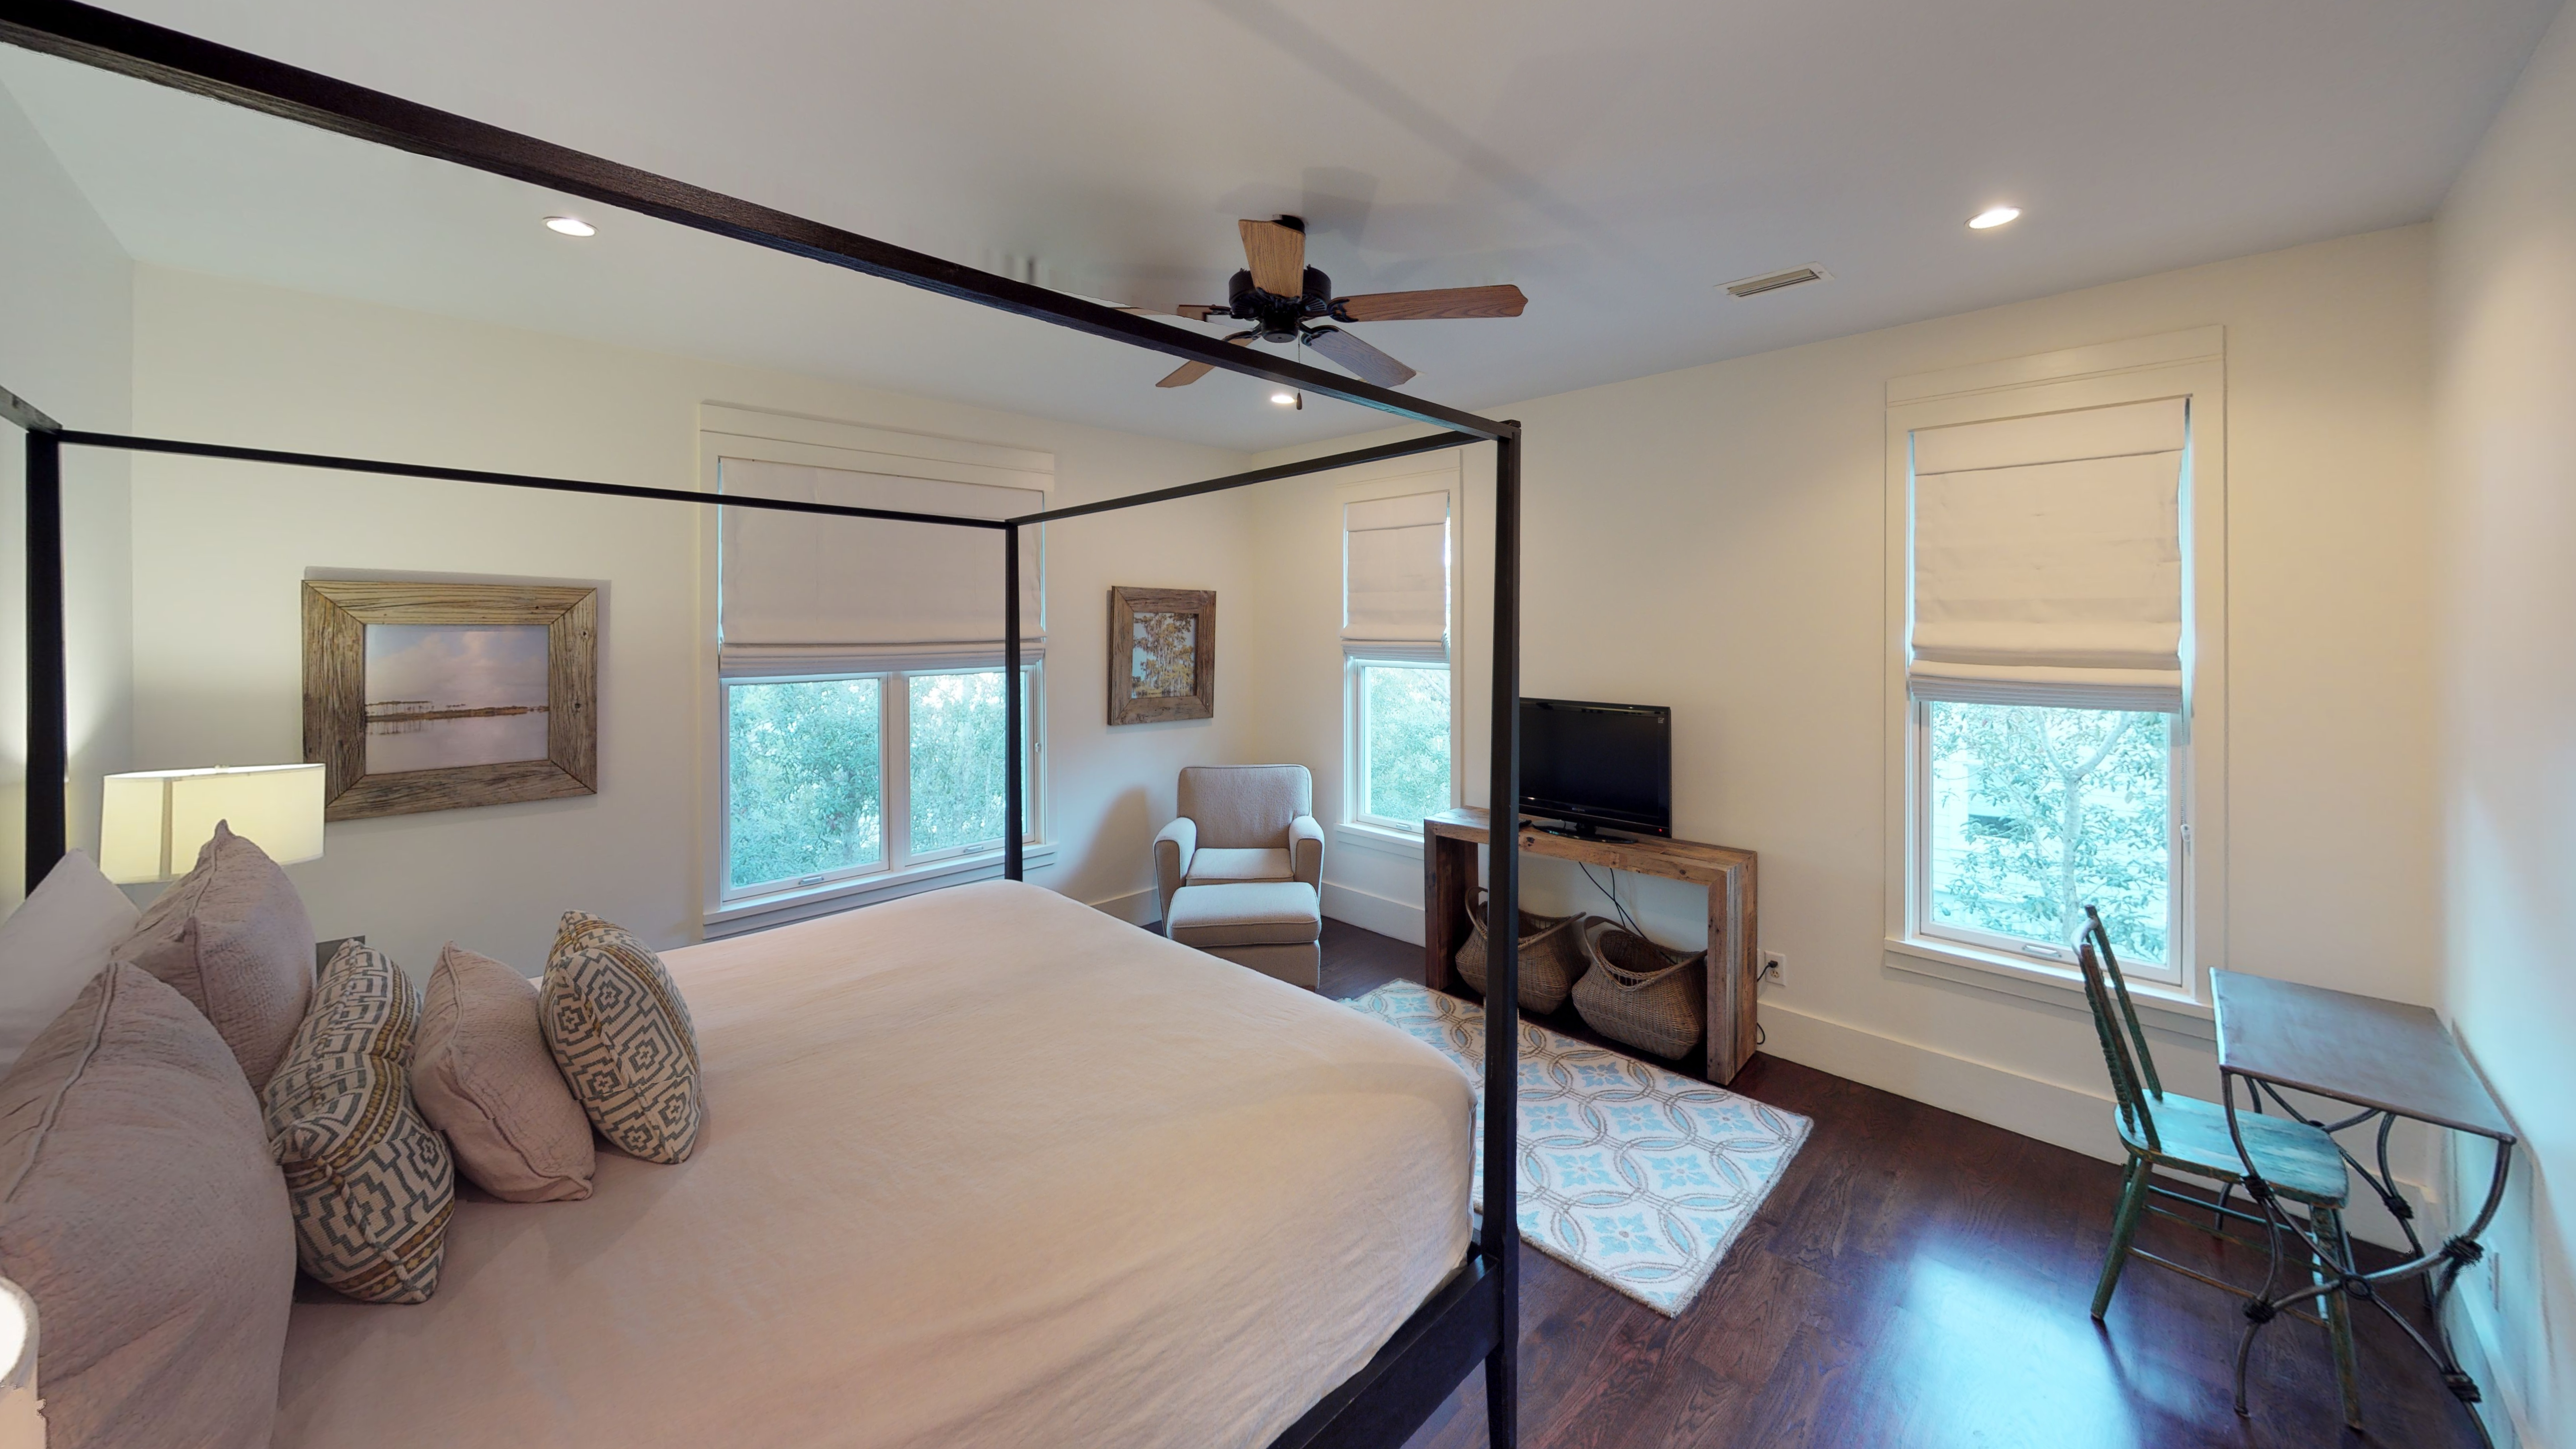 Master bedroom with a king bed